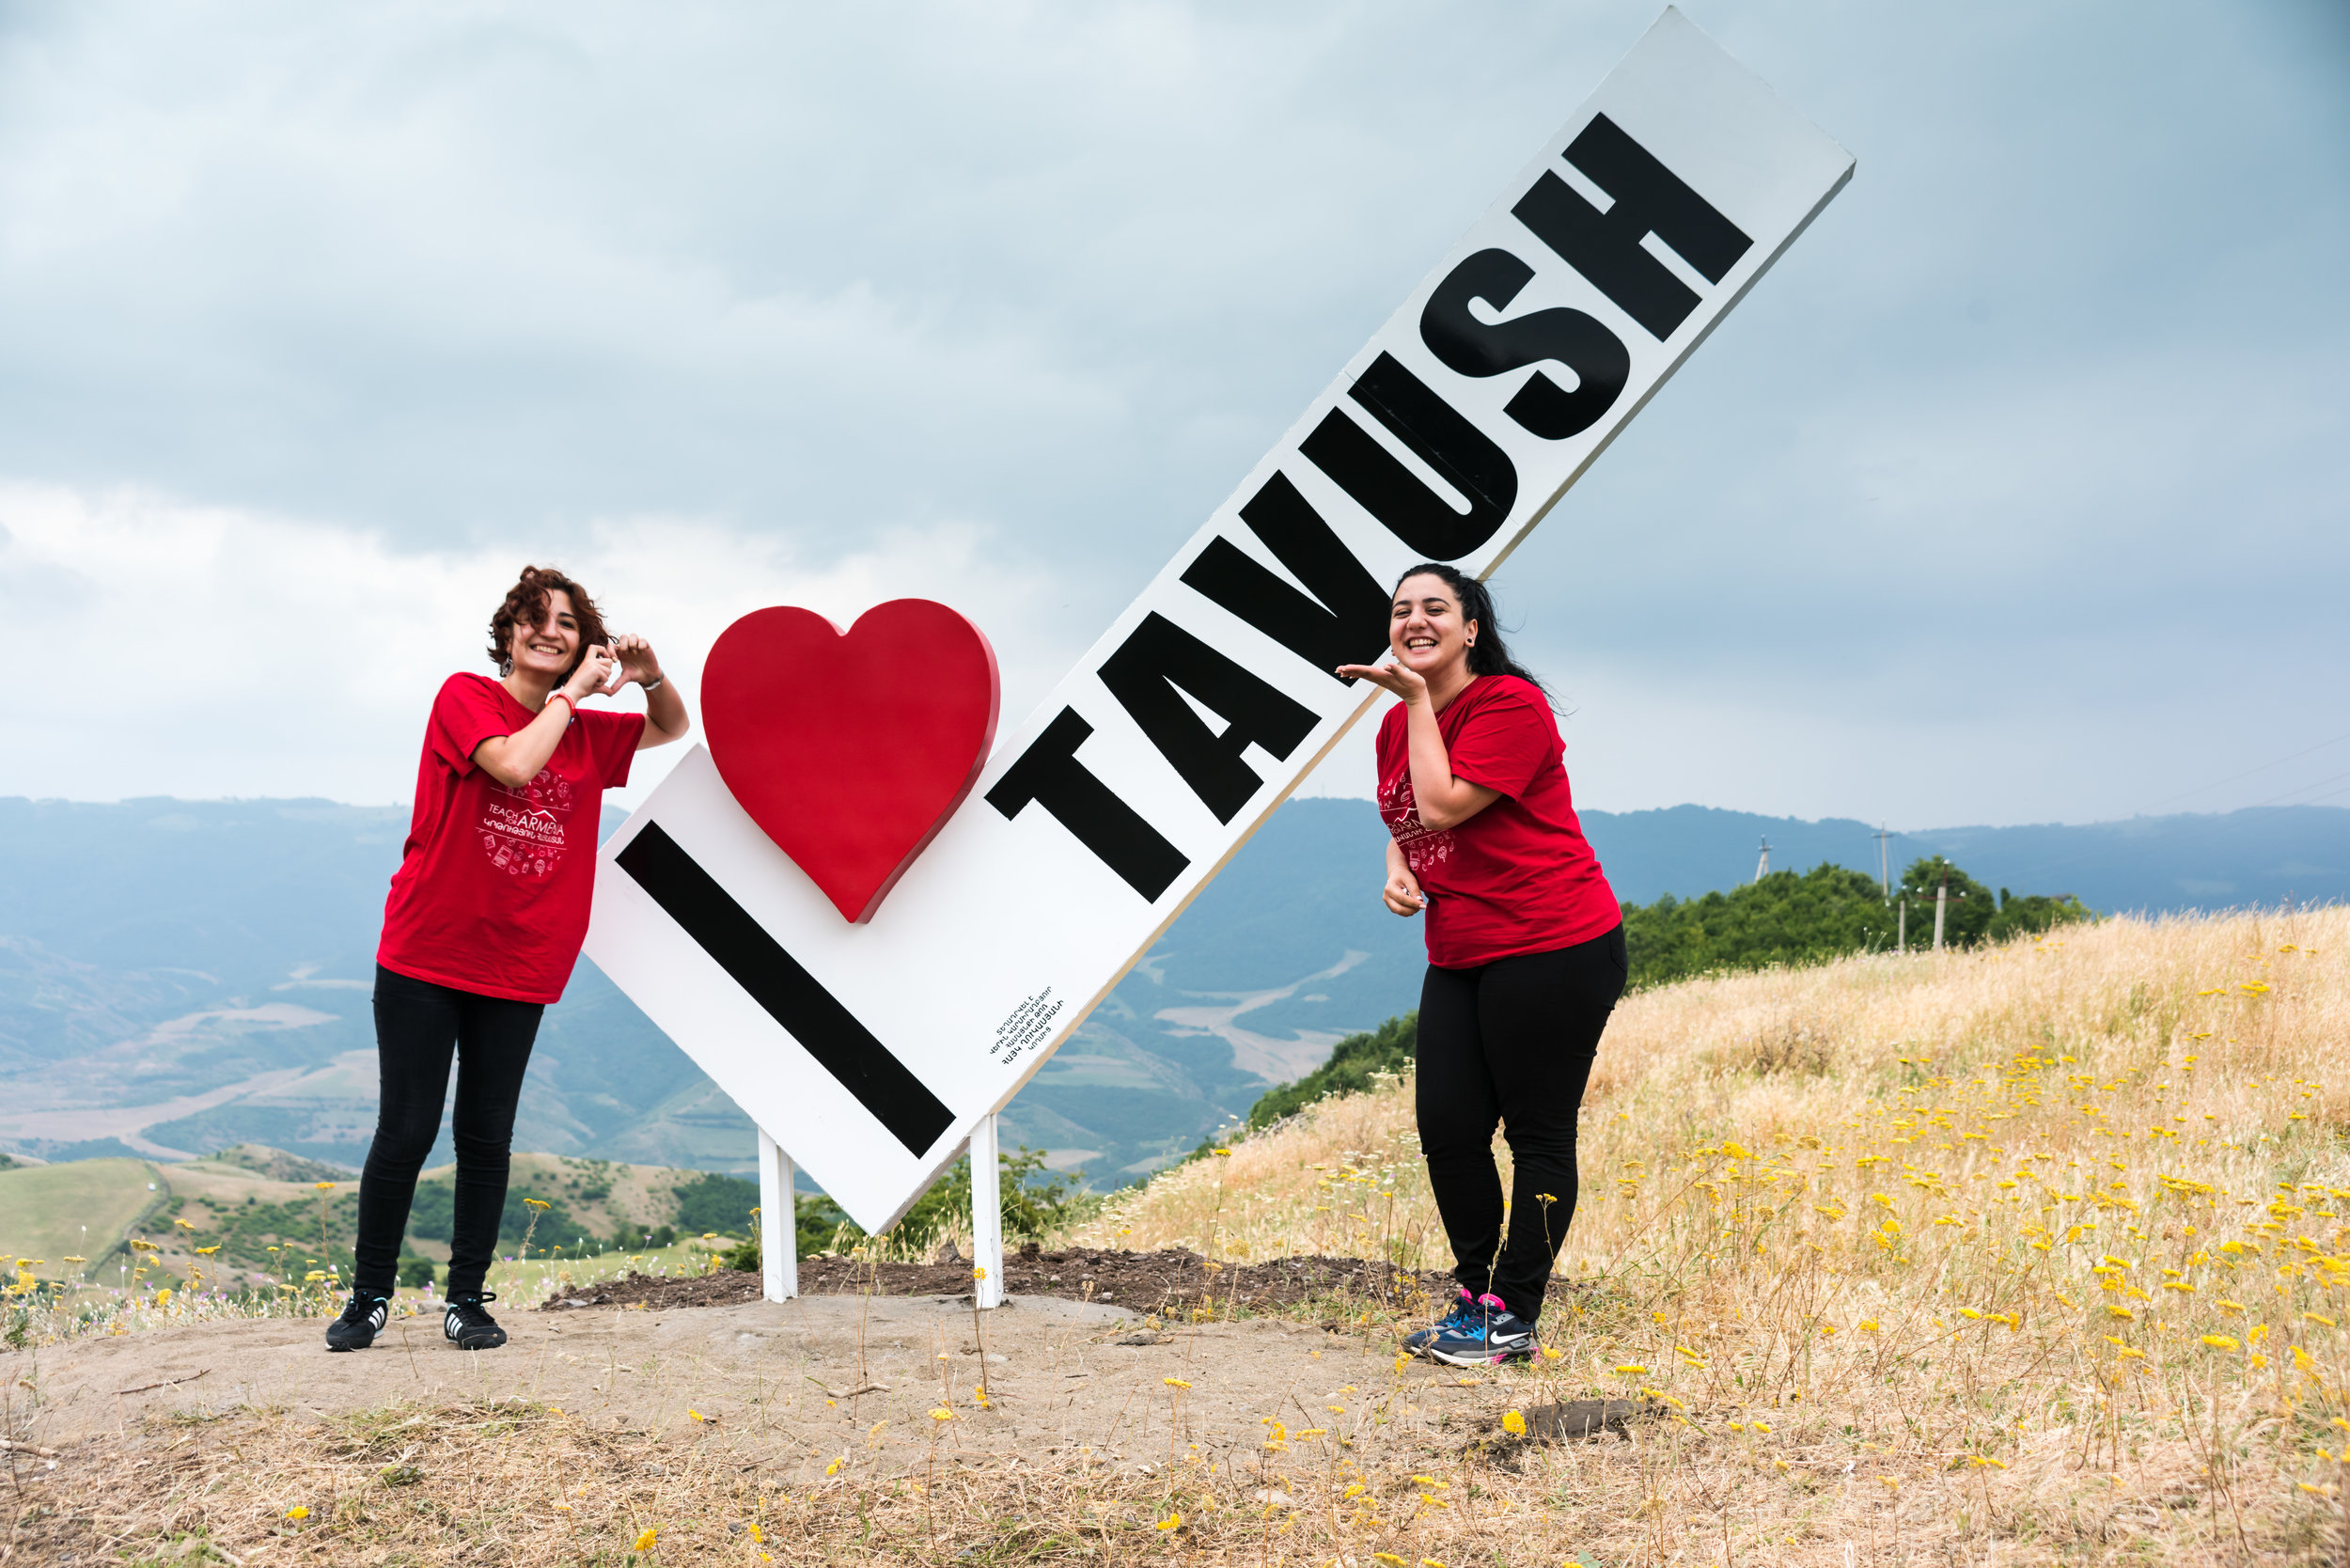 Margarita (left) and Arsholuys (right) by the newly installed I Love Tavush sign